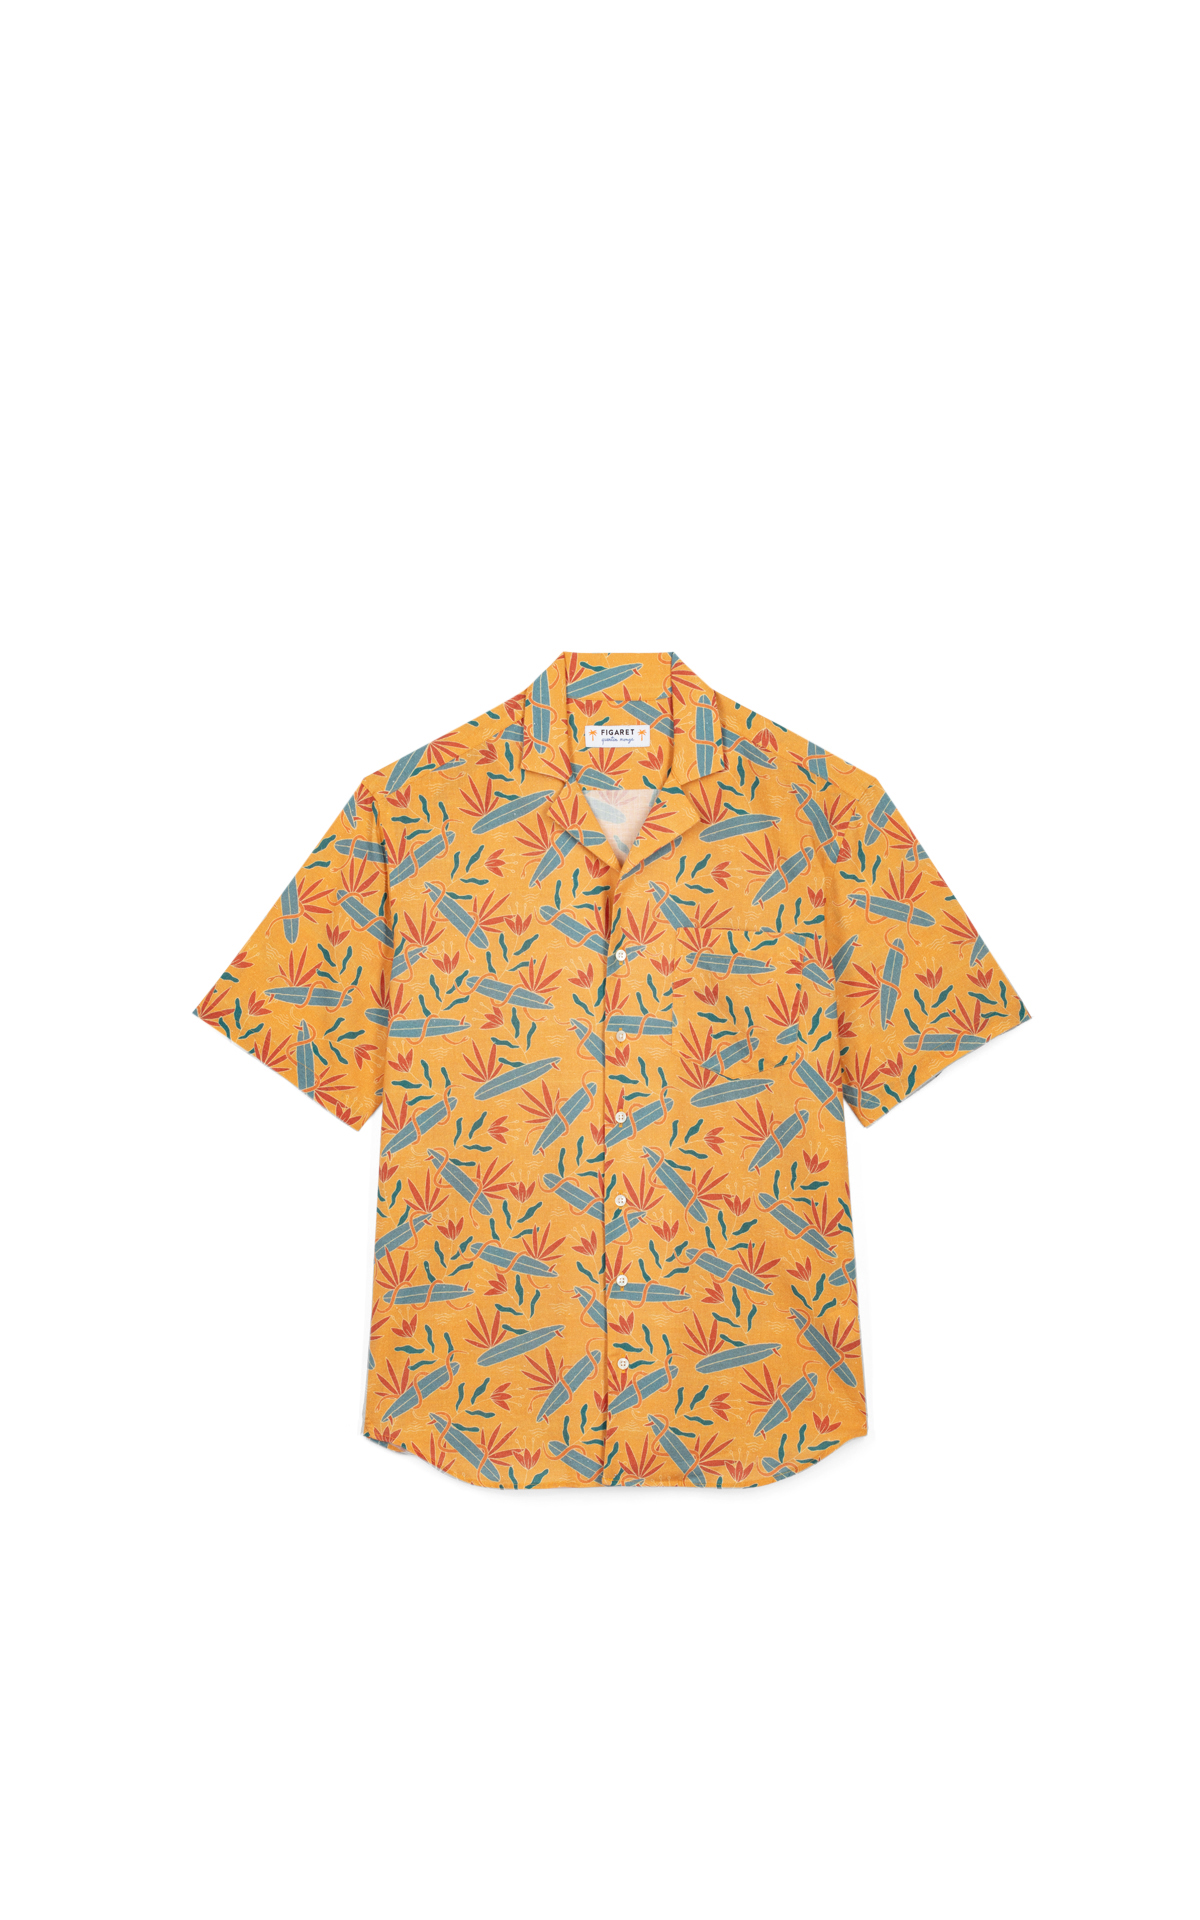 Figaret Paris Patterned shirt